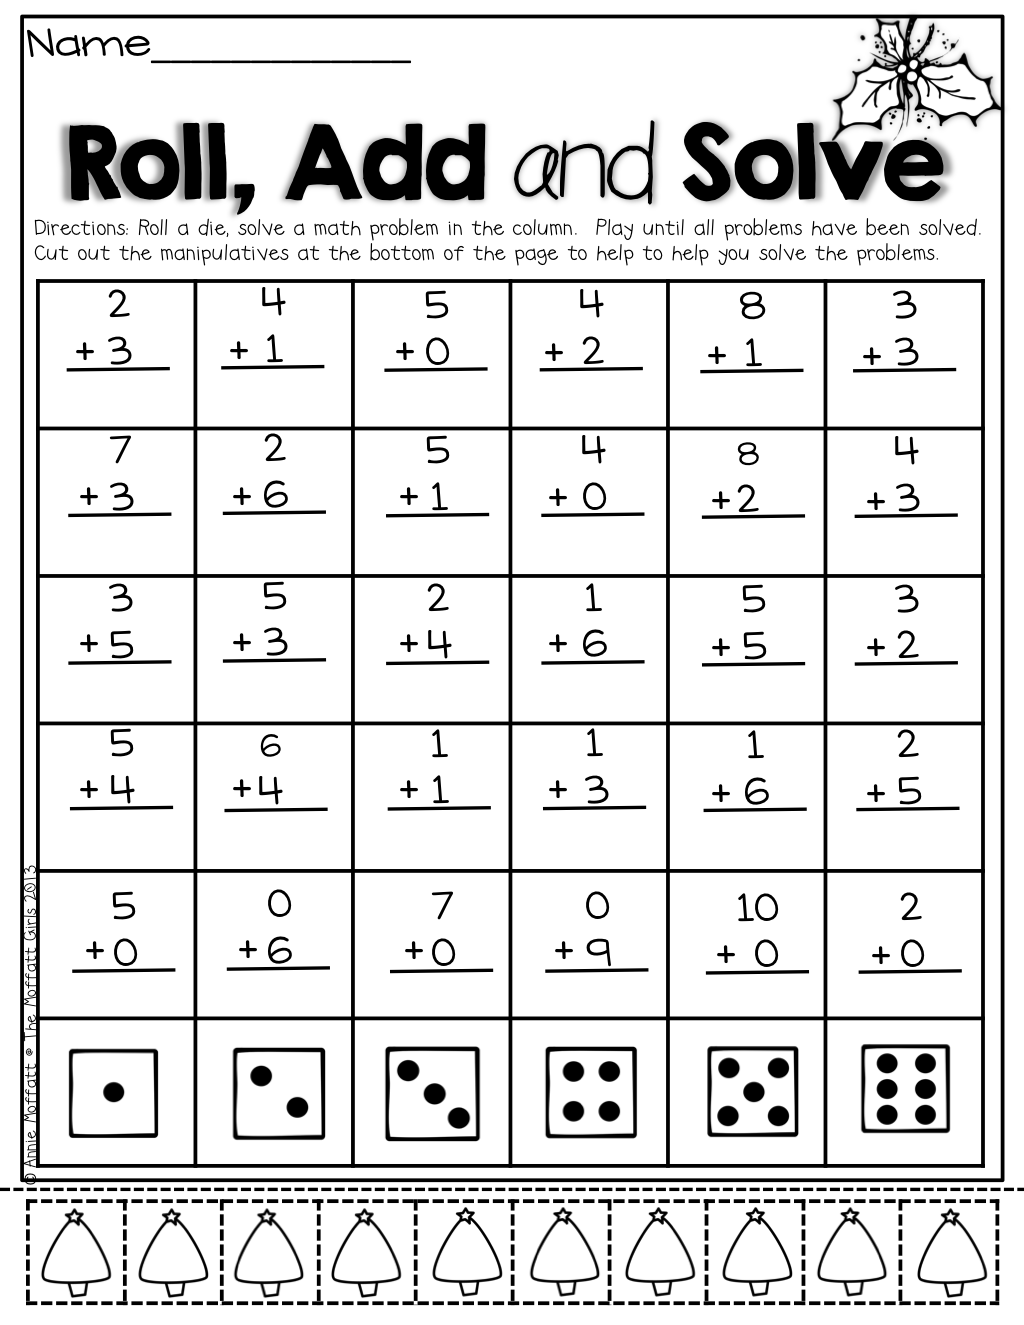 Roll The Dice And Solve One Of The Problems In The Column